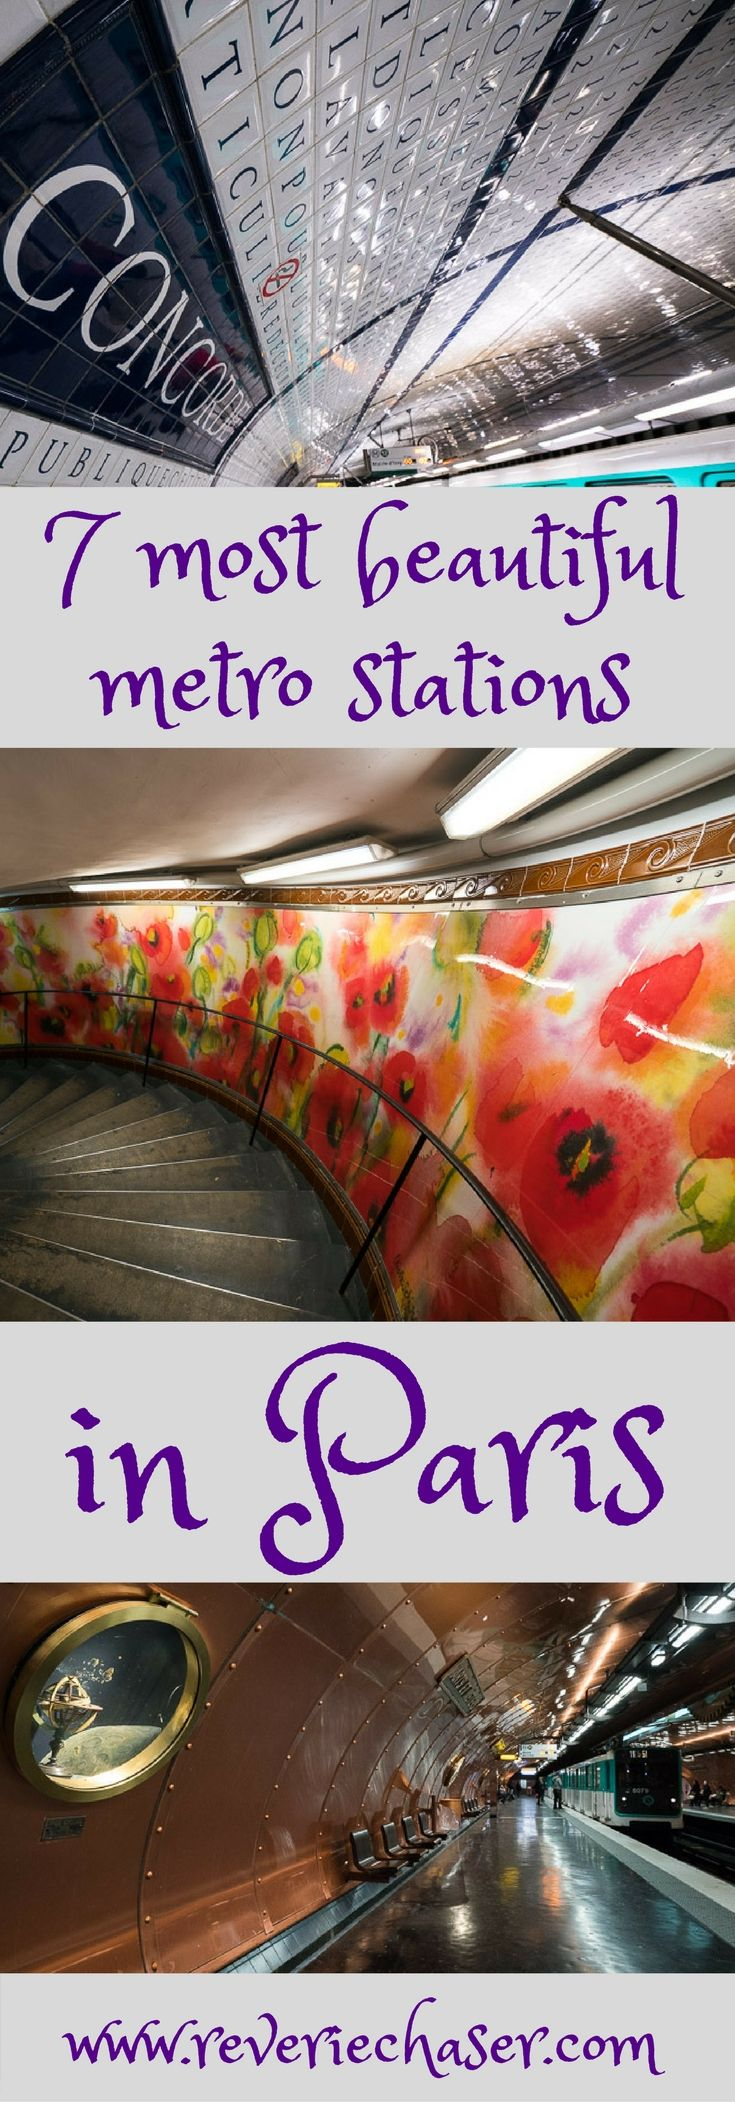 The most beautiful stations in Paris not to be missed - Concorde, HÔTEL DE VILLE, LOUVRE RIVOLI, BASTILLE, ABBESSES, ARTS ET METIERS, CITÉ. Don't miss the beautiful French art underground, as even subway can be beautiful!